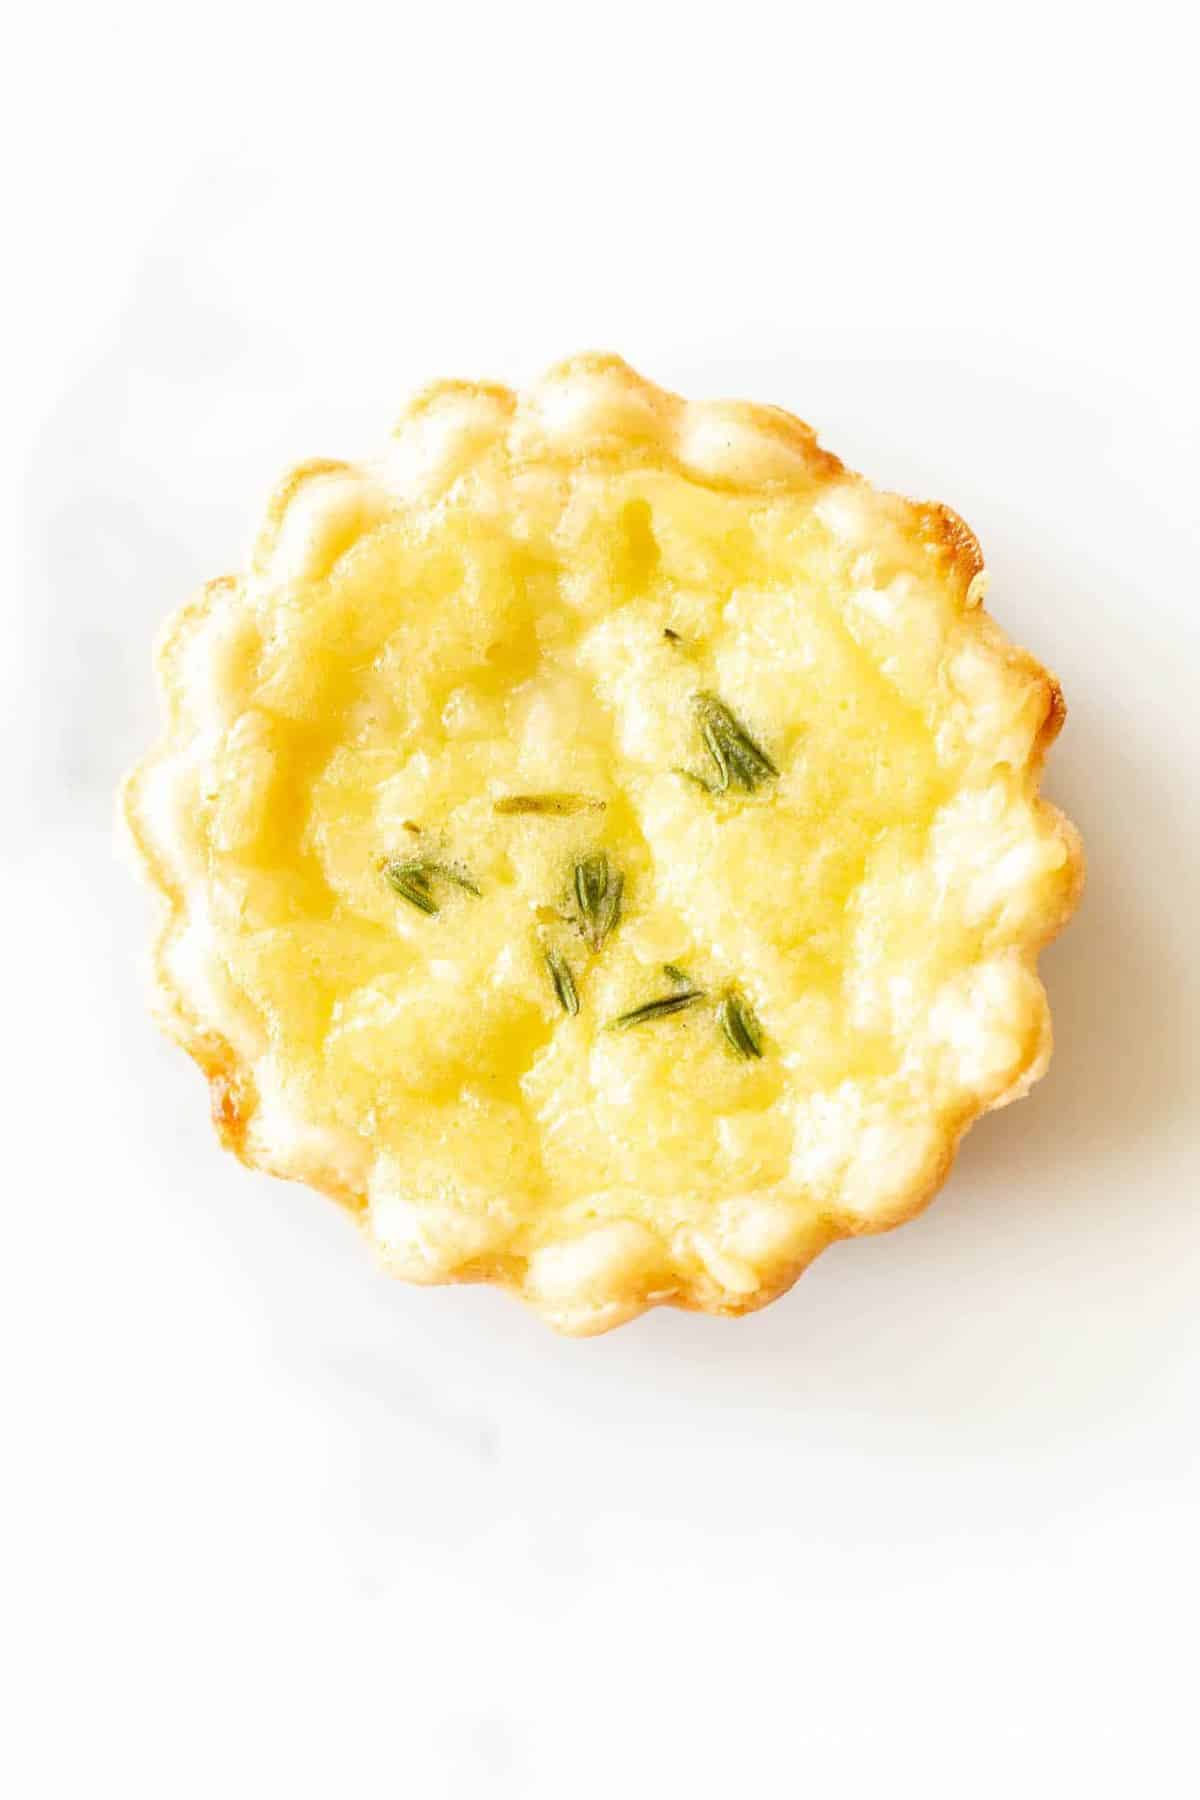 A single miniature cheese tart hors doeuvre on a white surface.